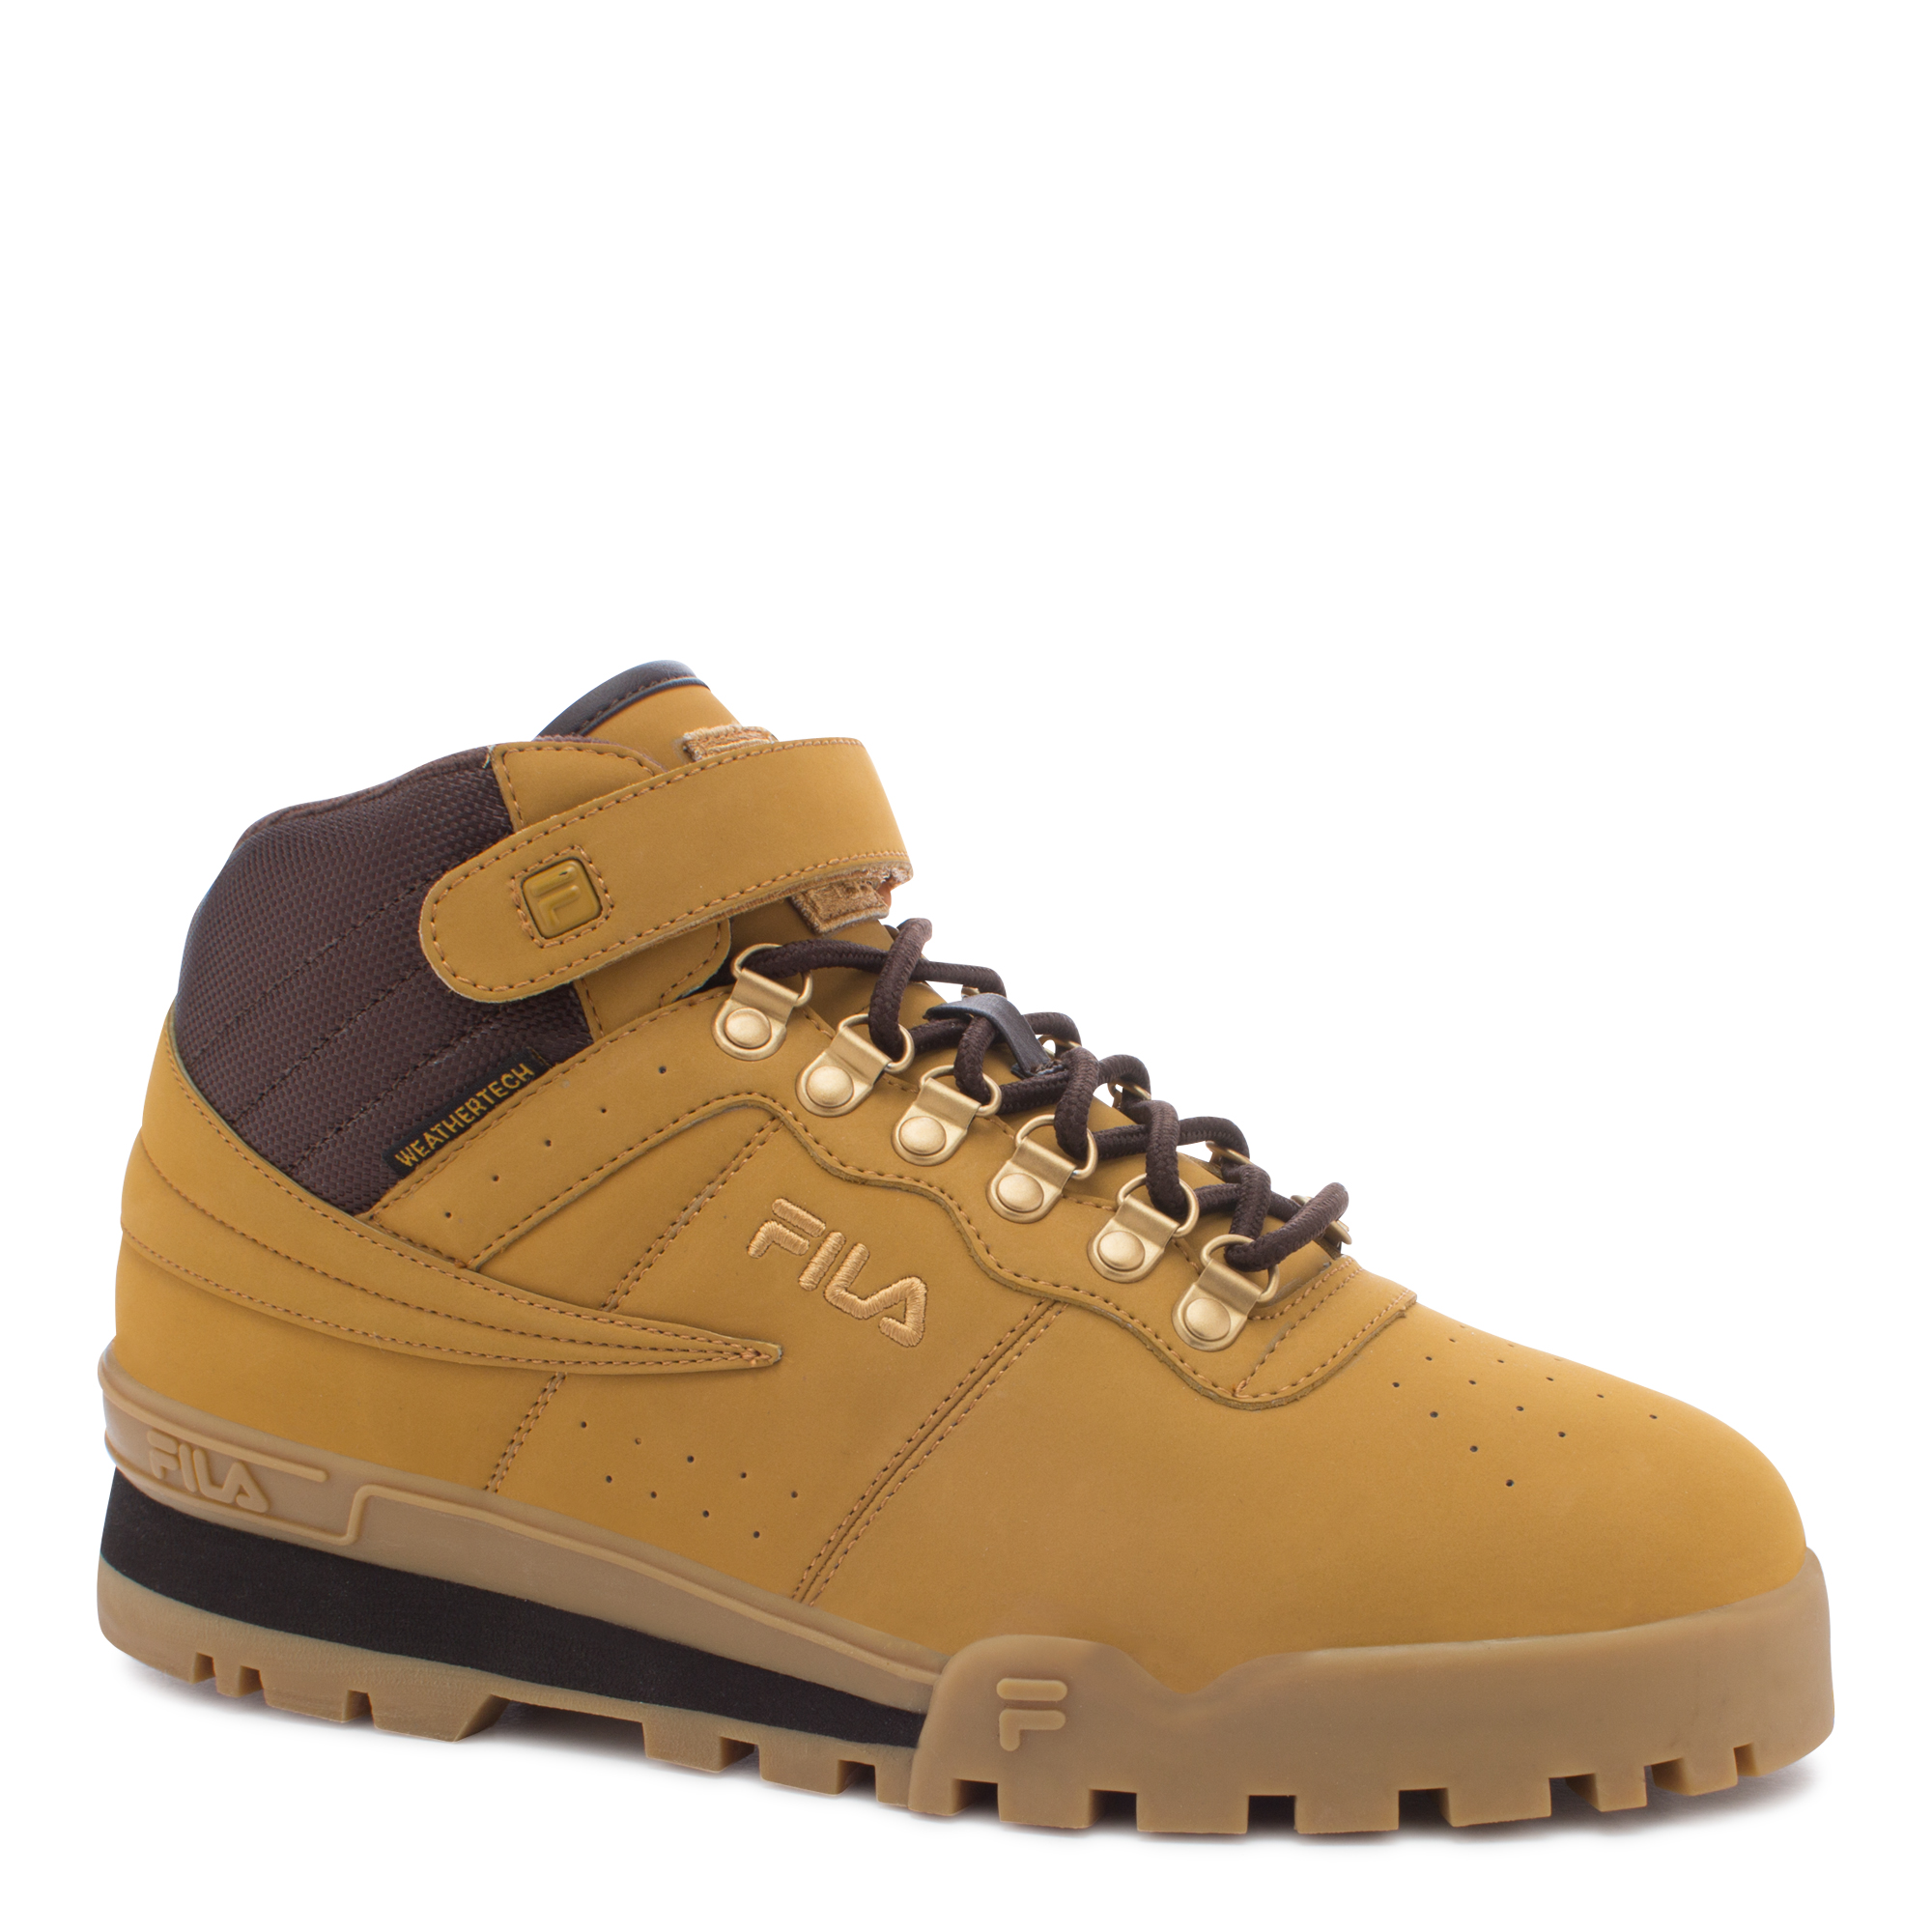 fila boots. picture 1 of fila boots